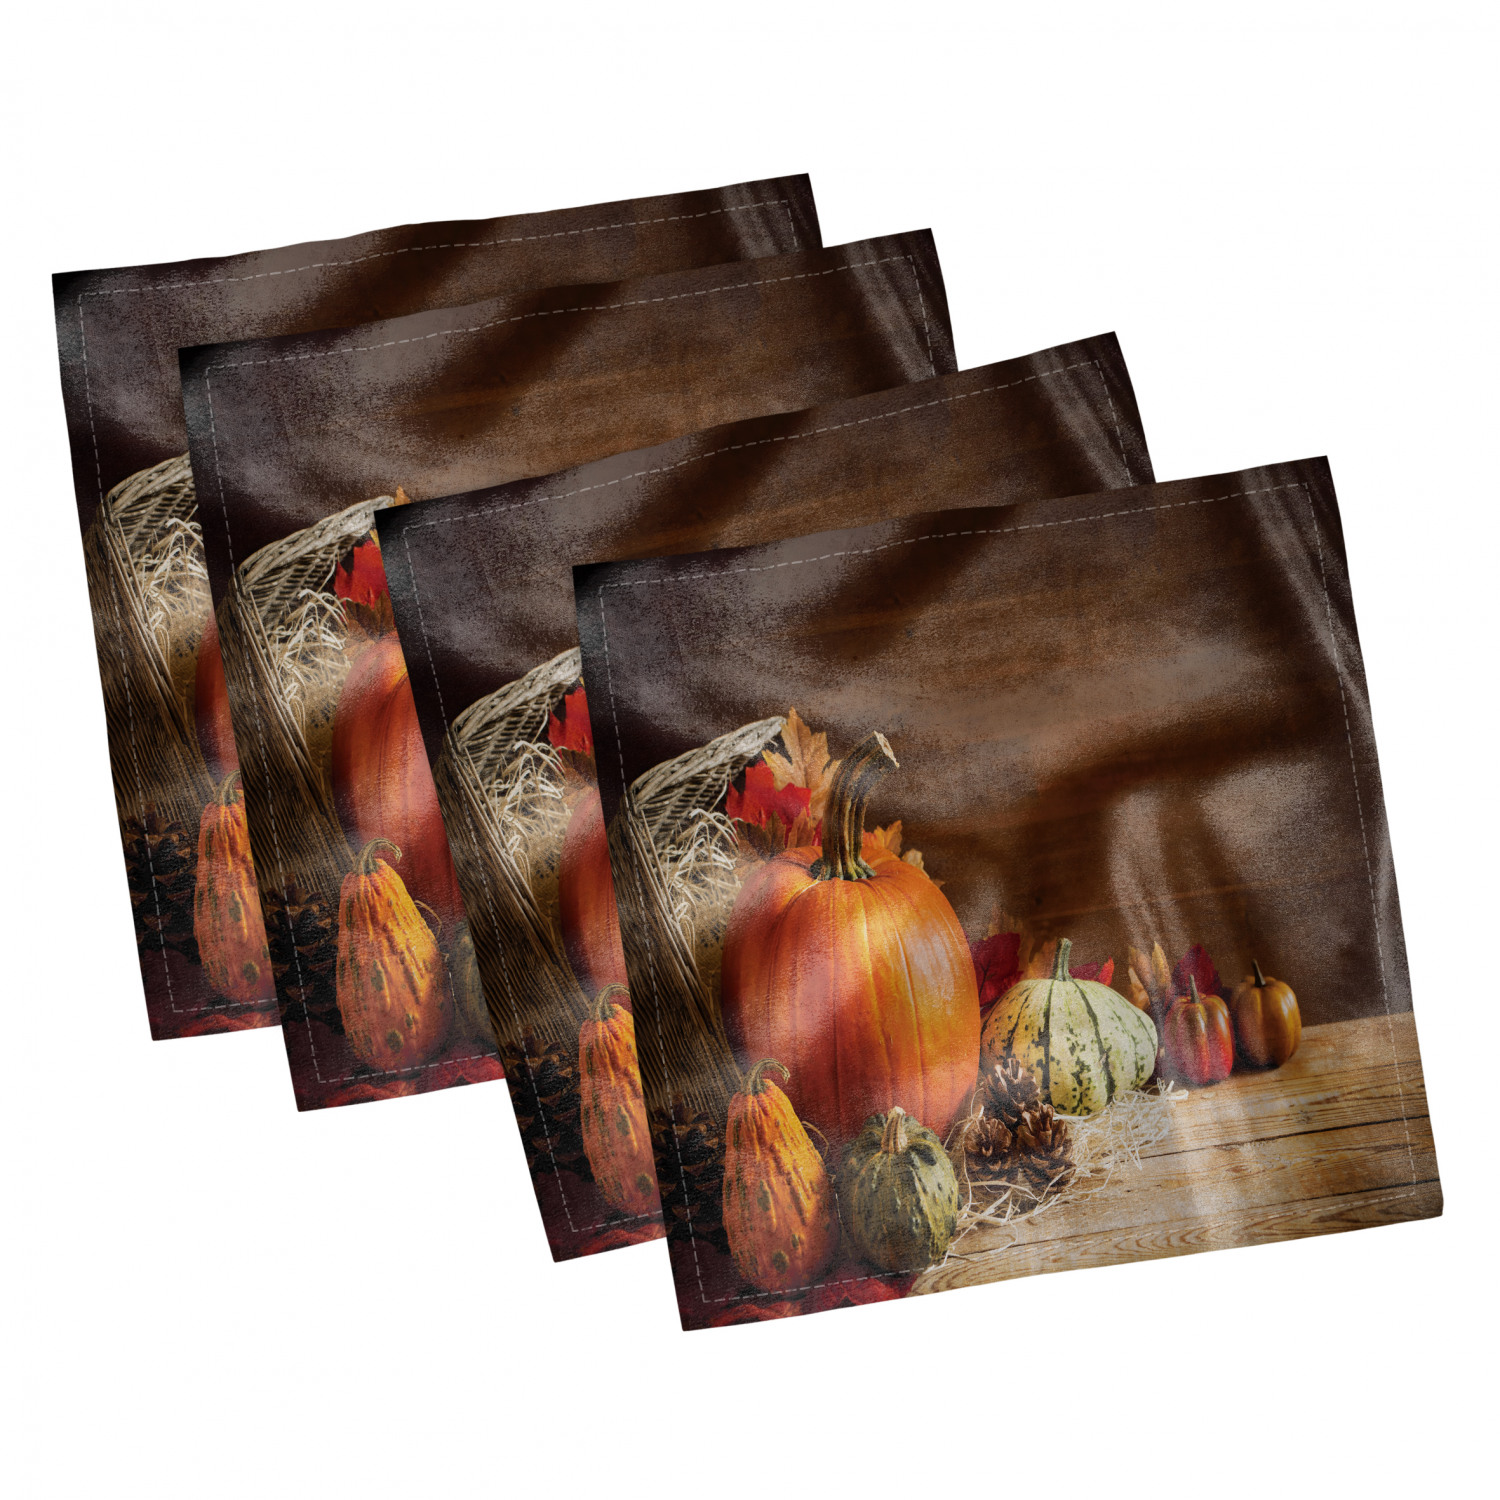 thumbnail 25 - Ambesonne-Autumn-Fall-Decorative-Satin-Napkins-Set-of-4-Party-Dinner-Fabric